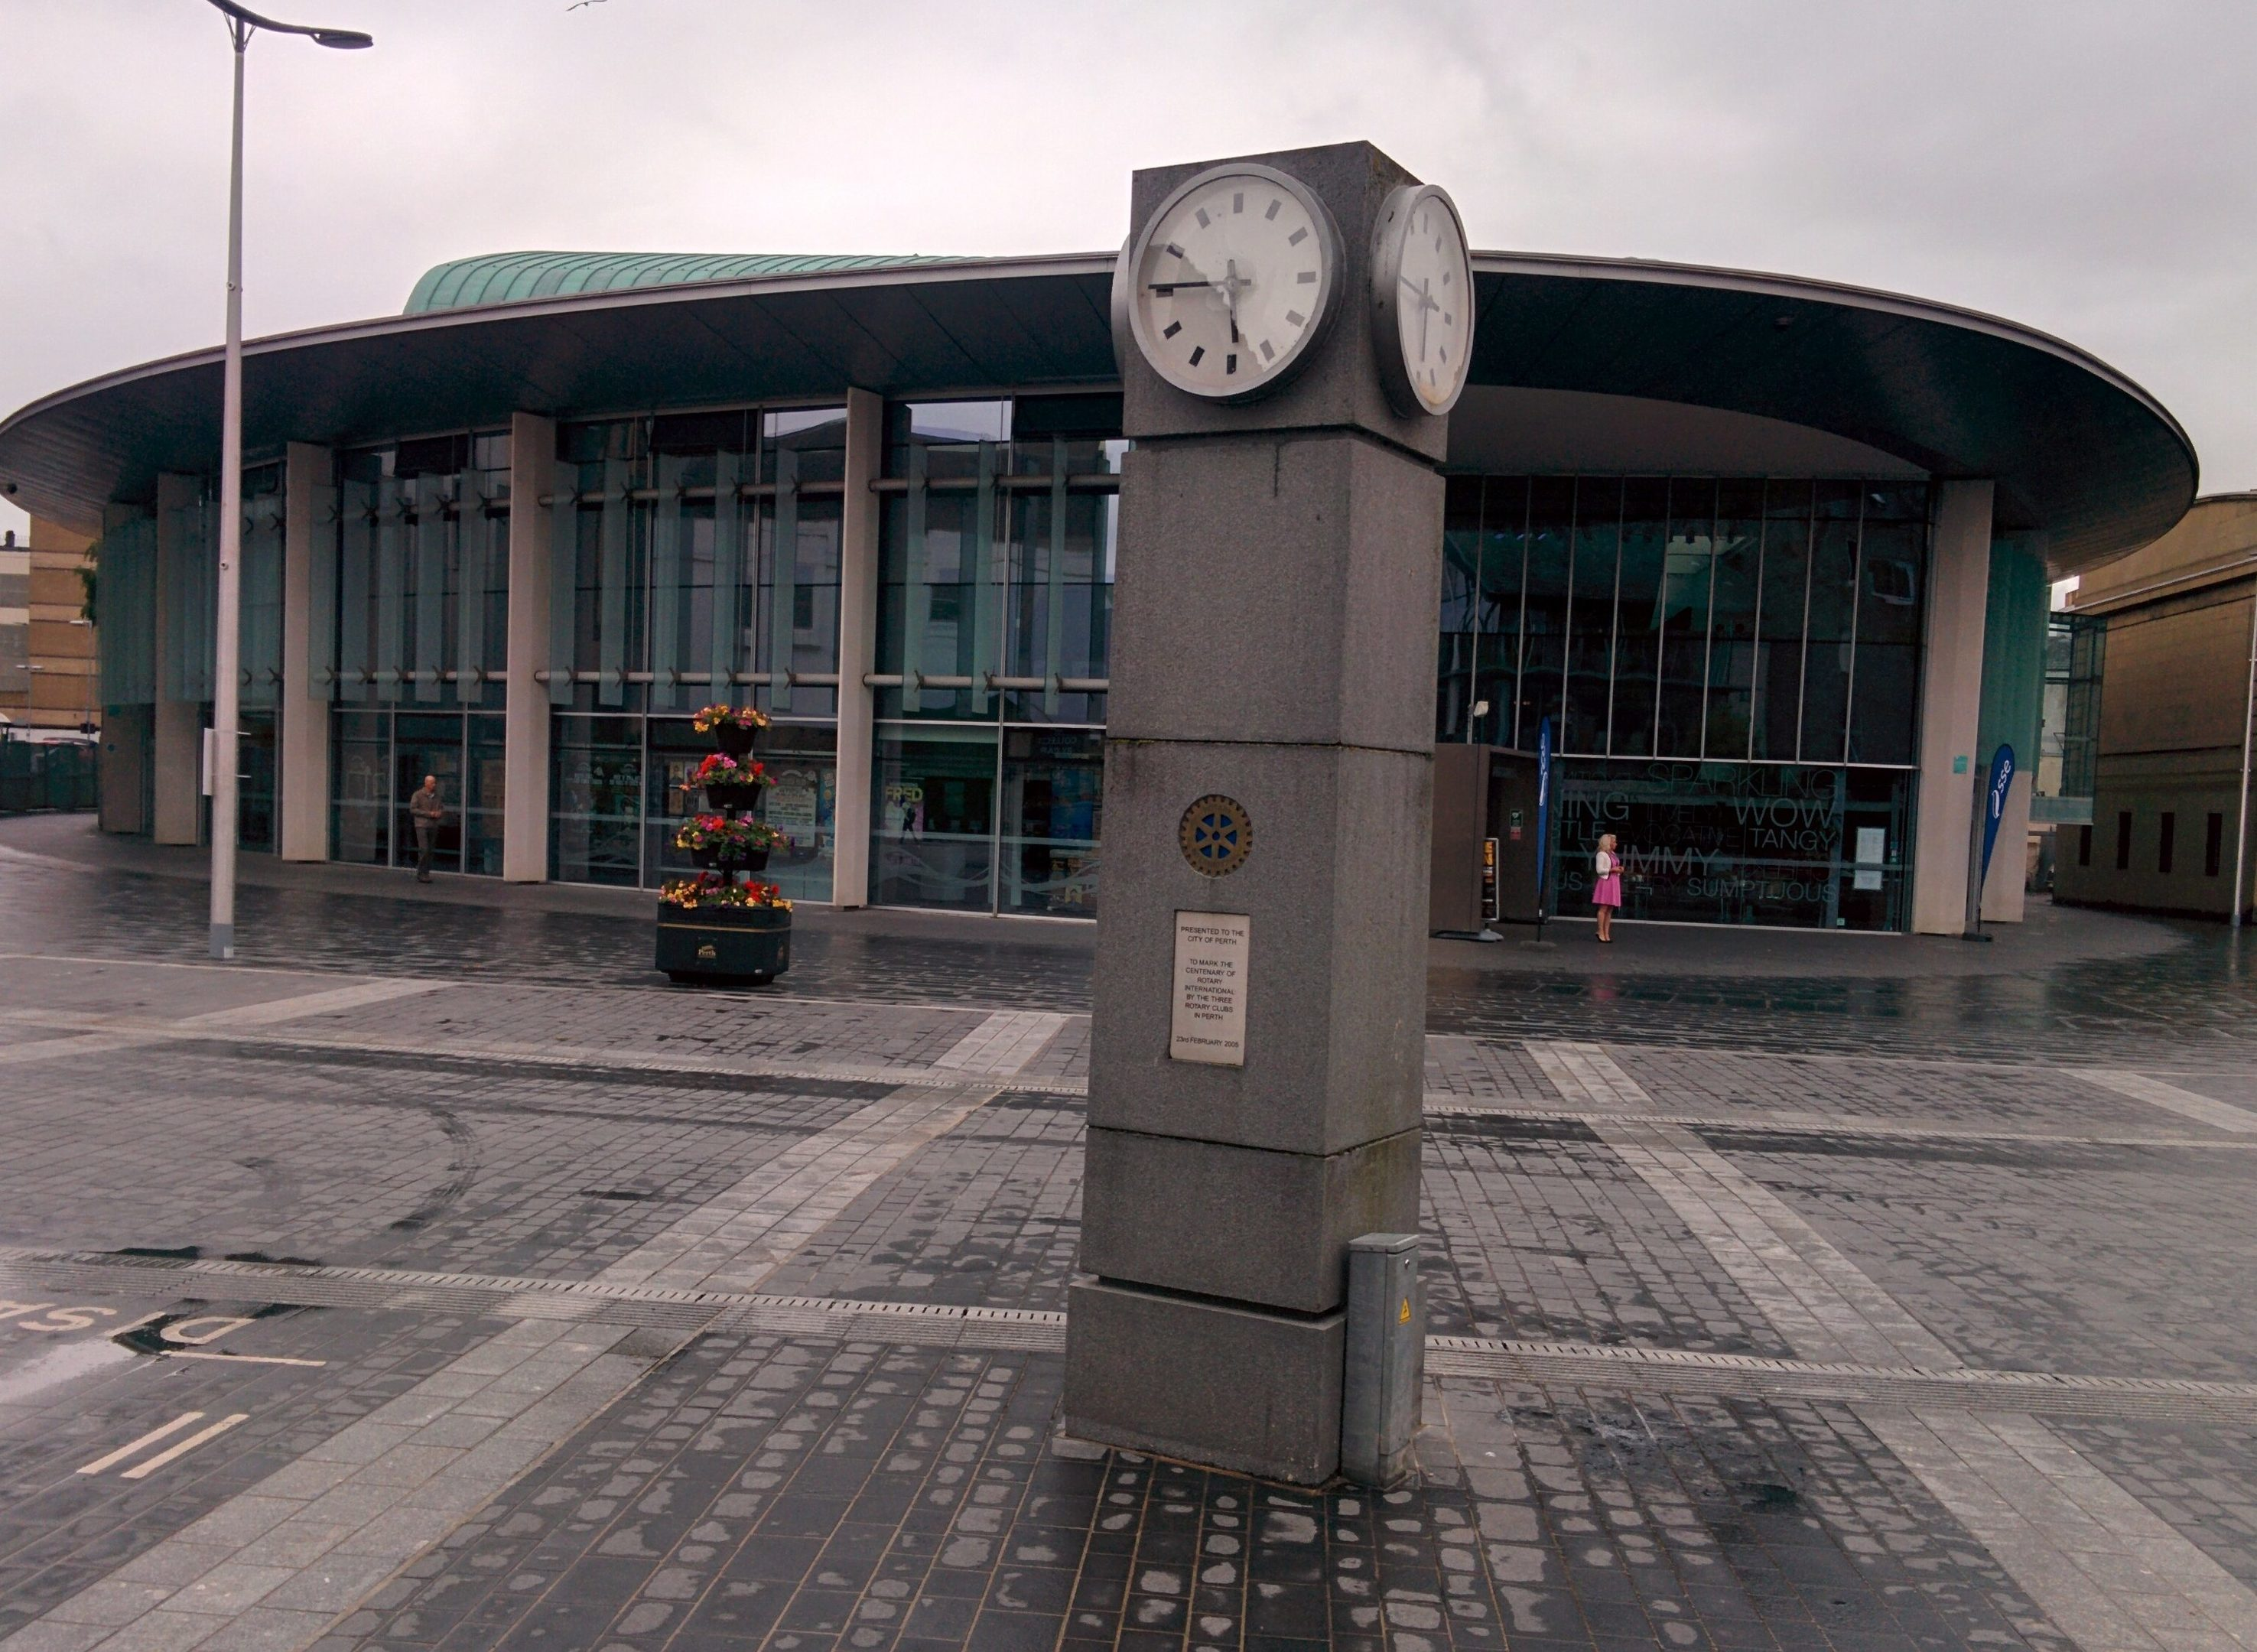 The broken clock with Perth Concert Hall behind.